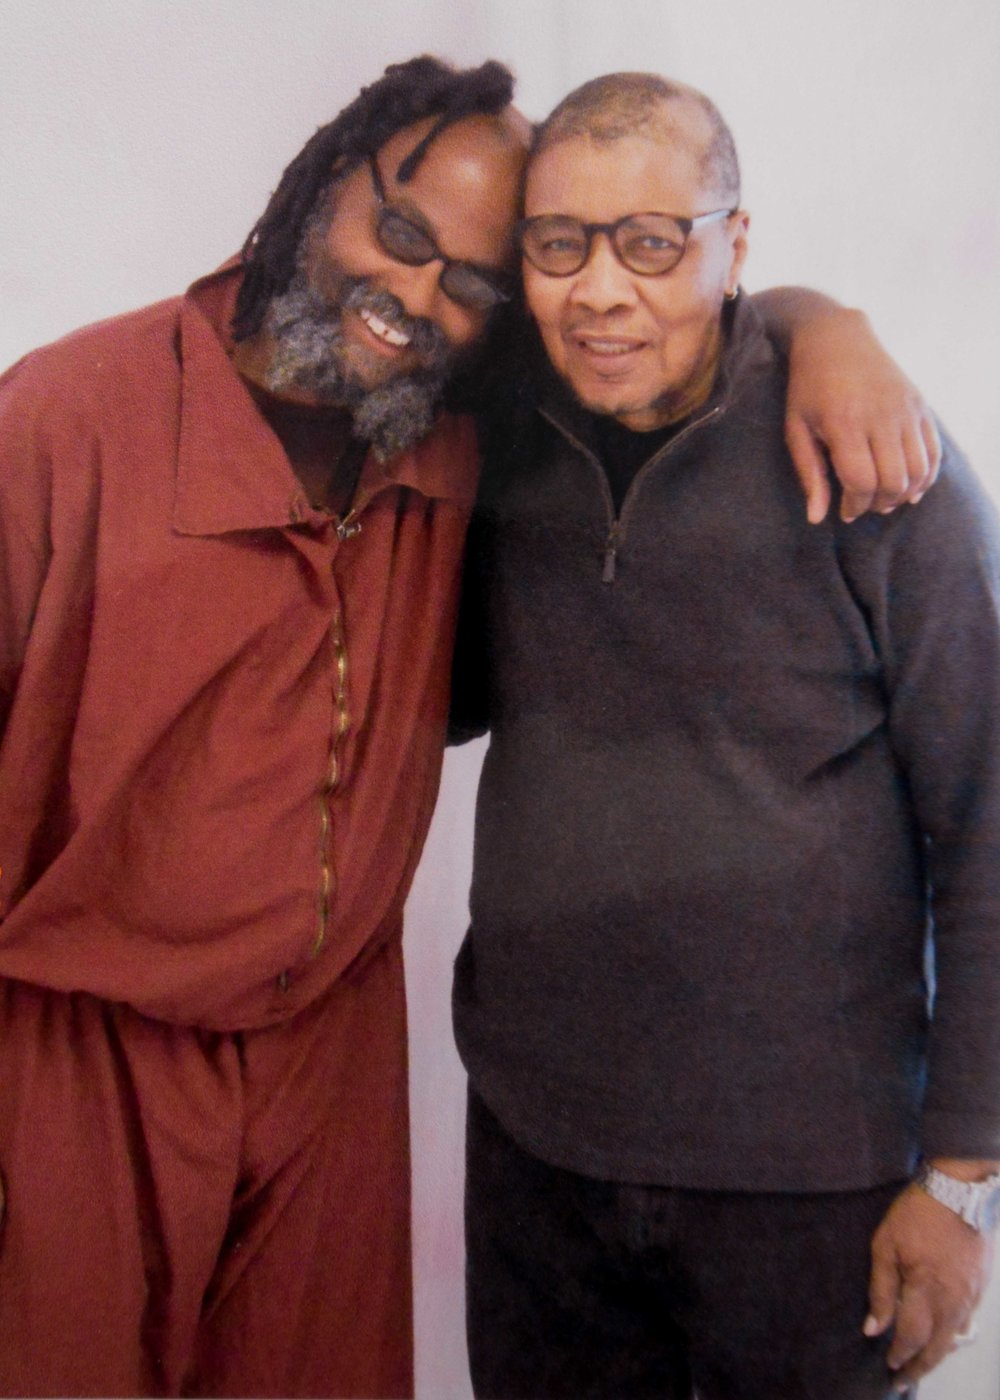 From Left - Mumia Abu-Jamal, his brother Keith Cook